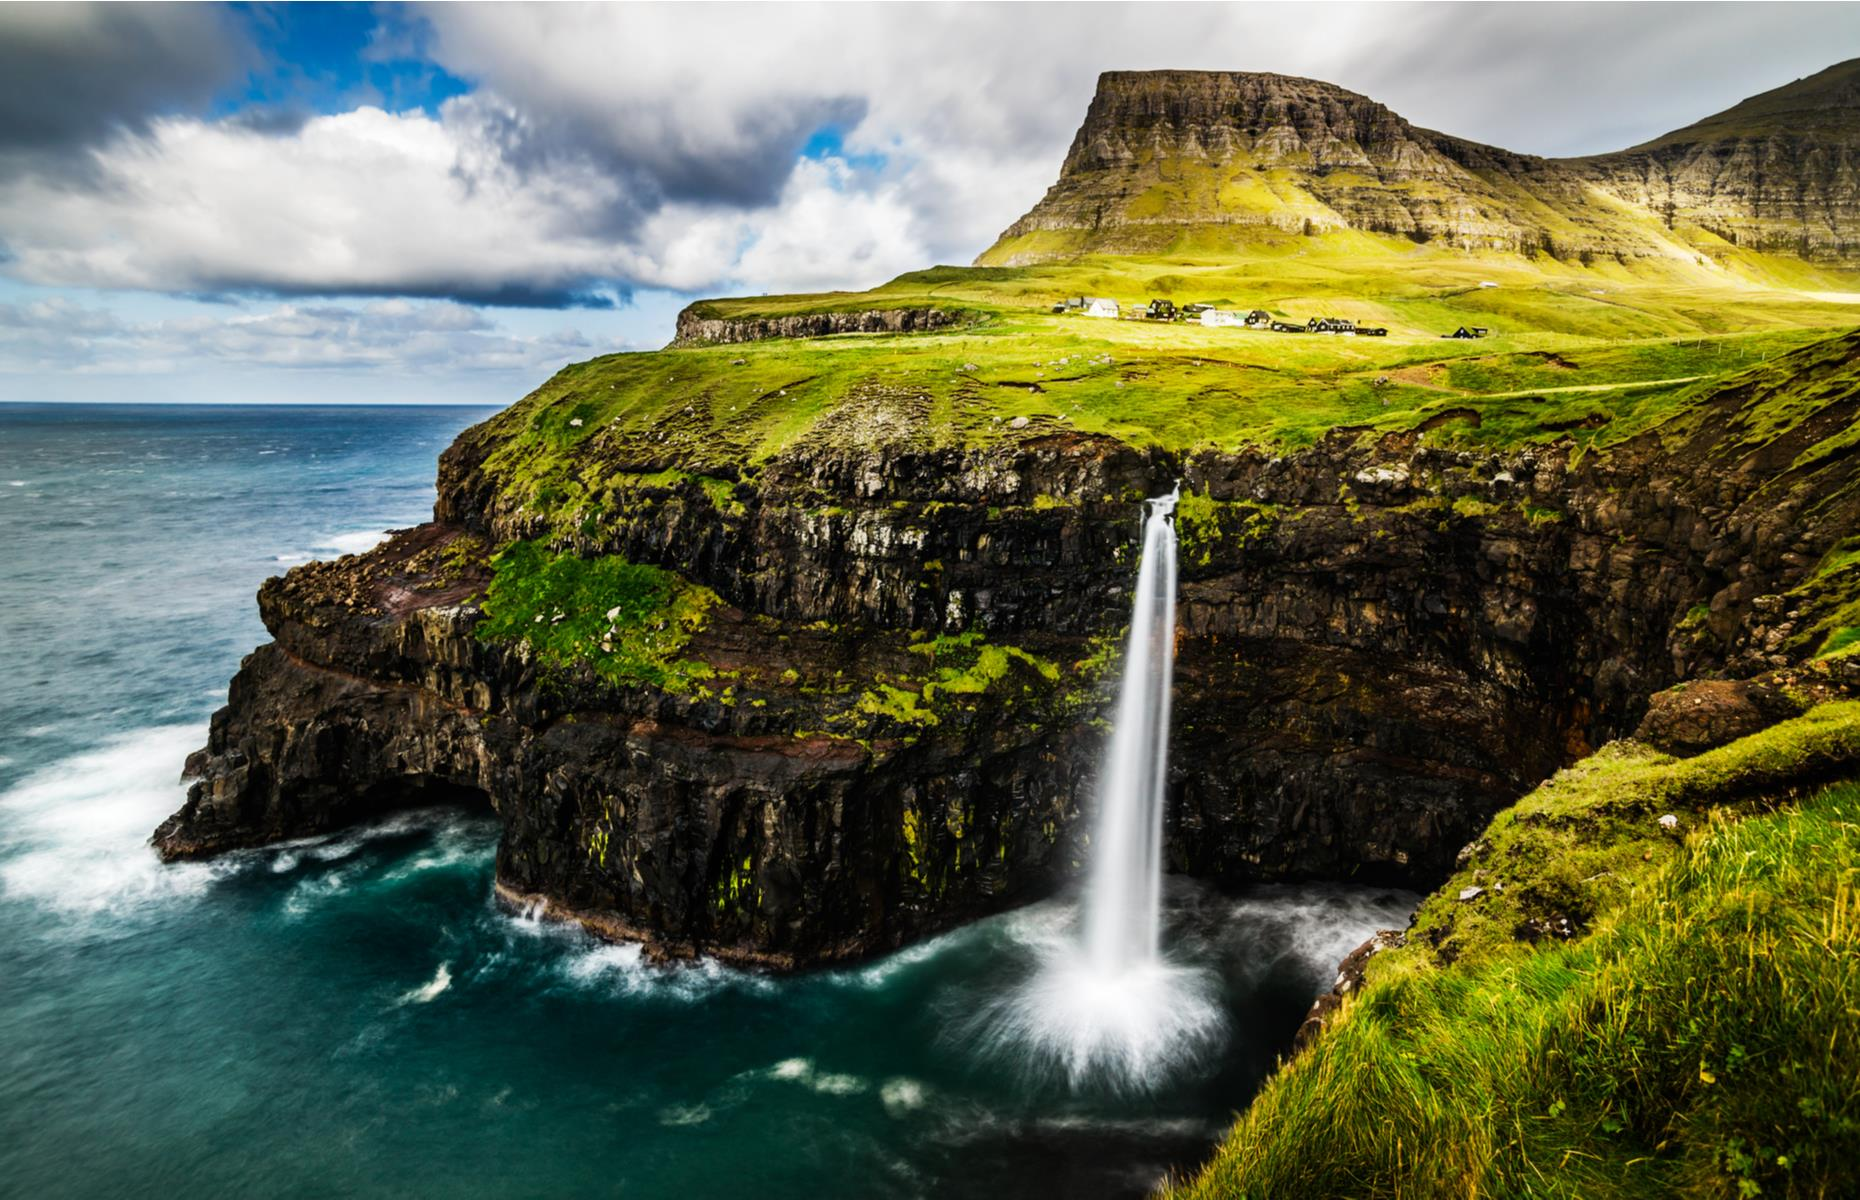 Slide 11 of 31: Every inch of the Faroe Islands archipelago feels otherworldly, from the green-carpeted mountains to Nordic villages and fjords shrouded in cool mist. One of the most dramatic sights is on Vágar, one of the largest islands. Here, Múlafossur waterfall drapes from a verdant, clifftop perch, emptying into the sea like white velvet.